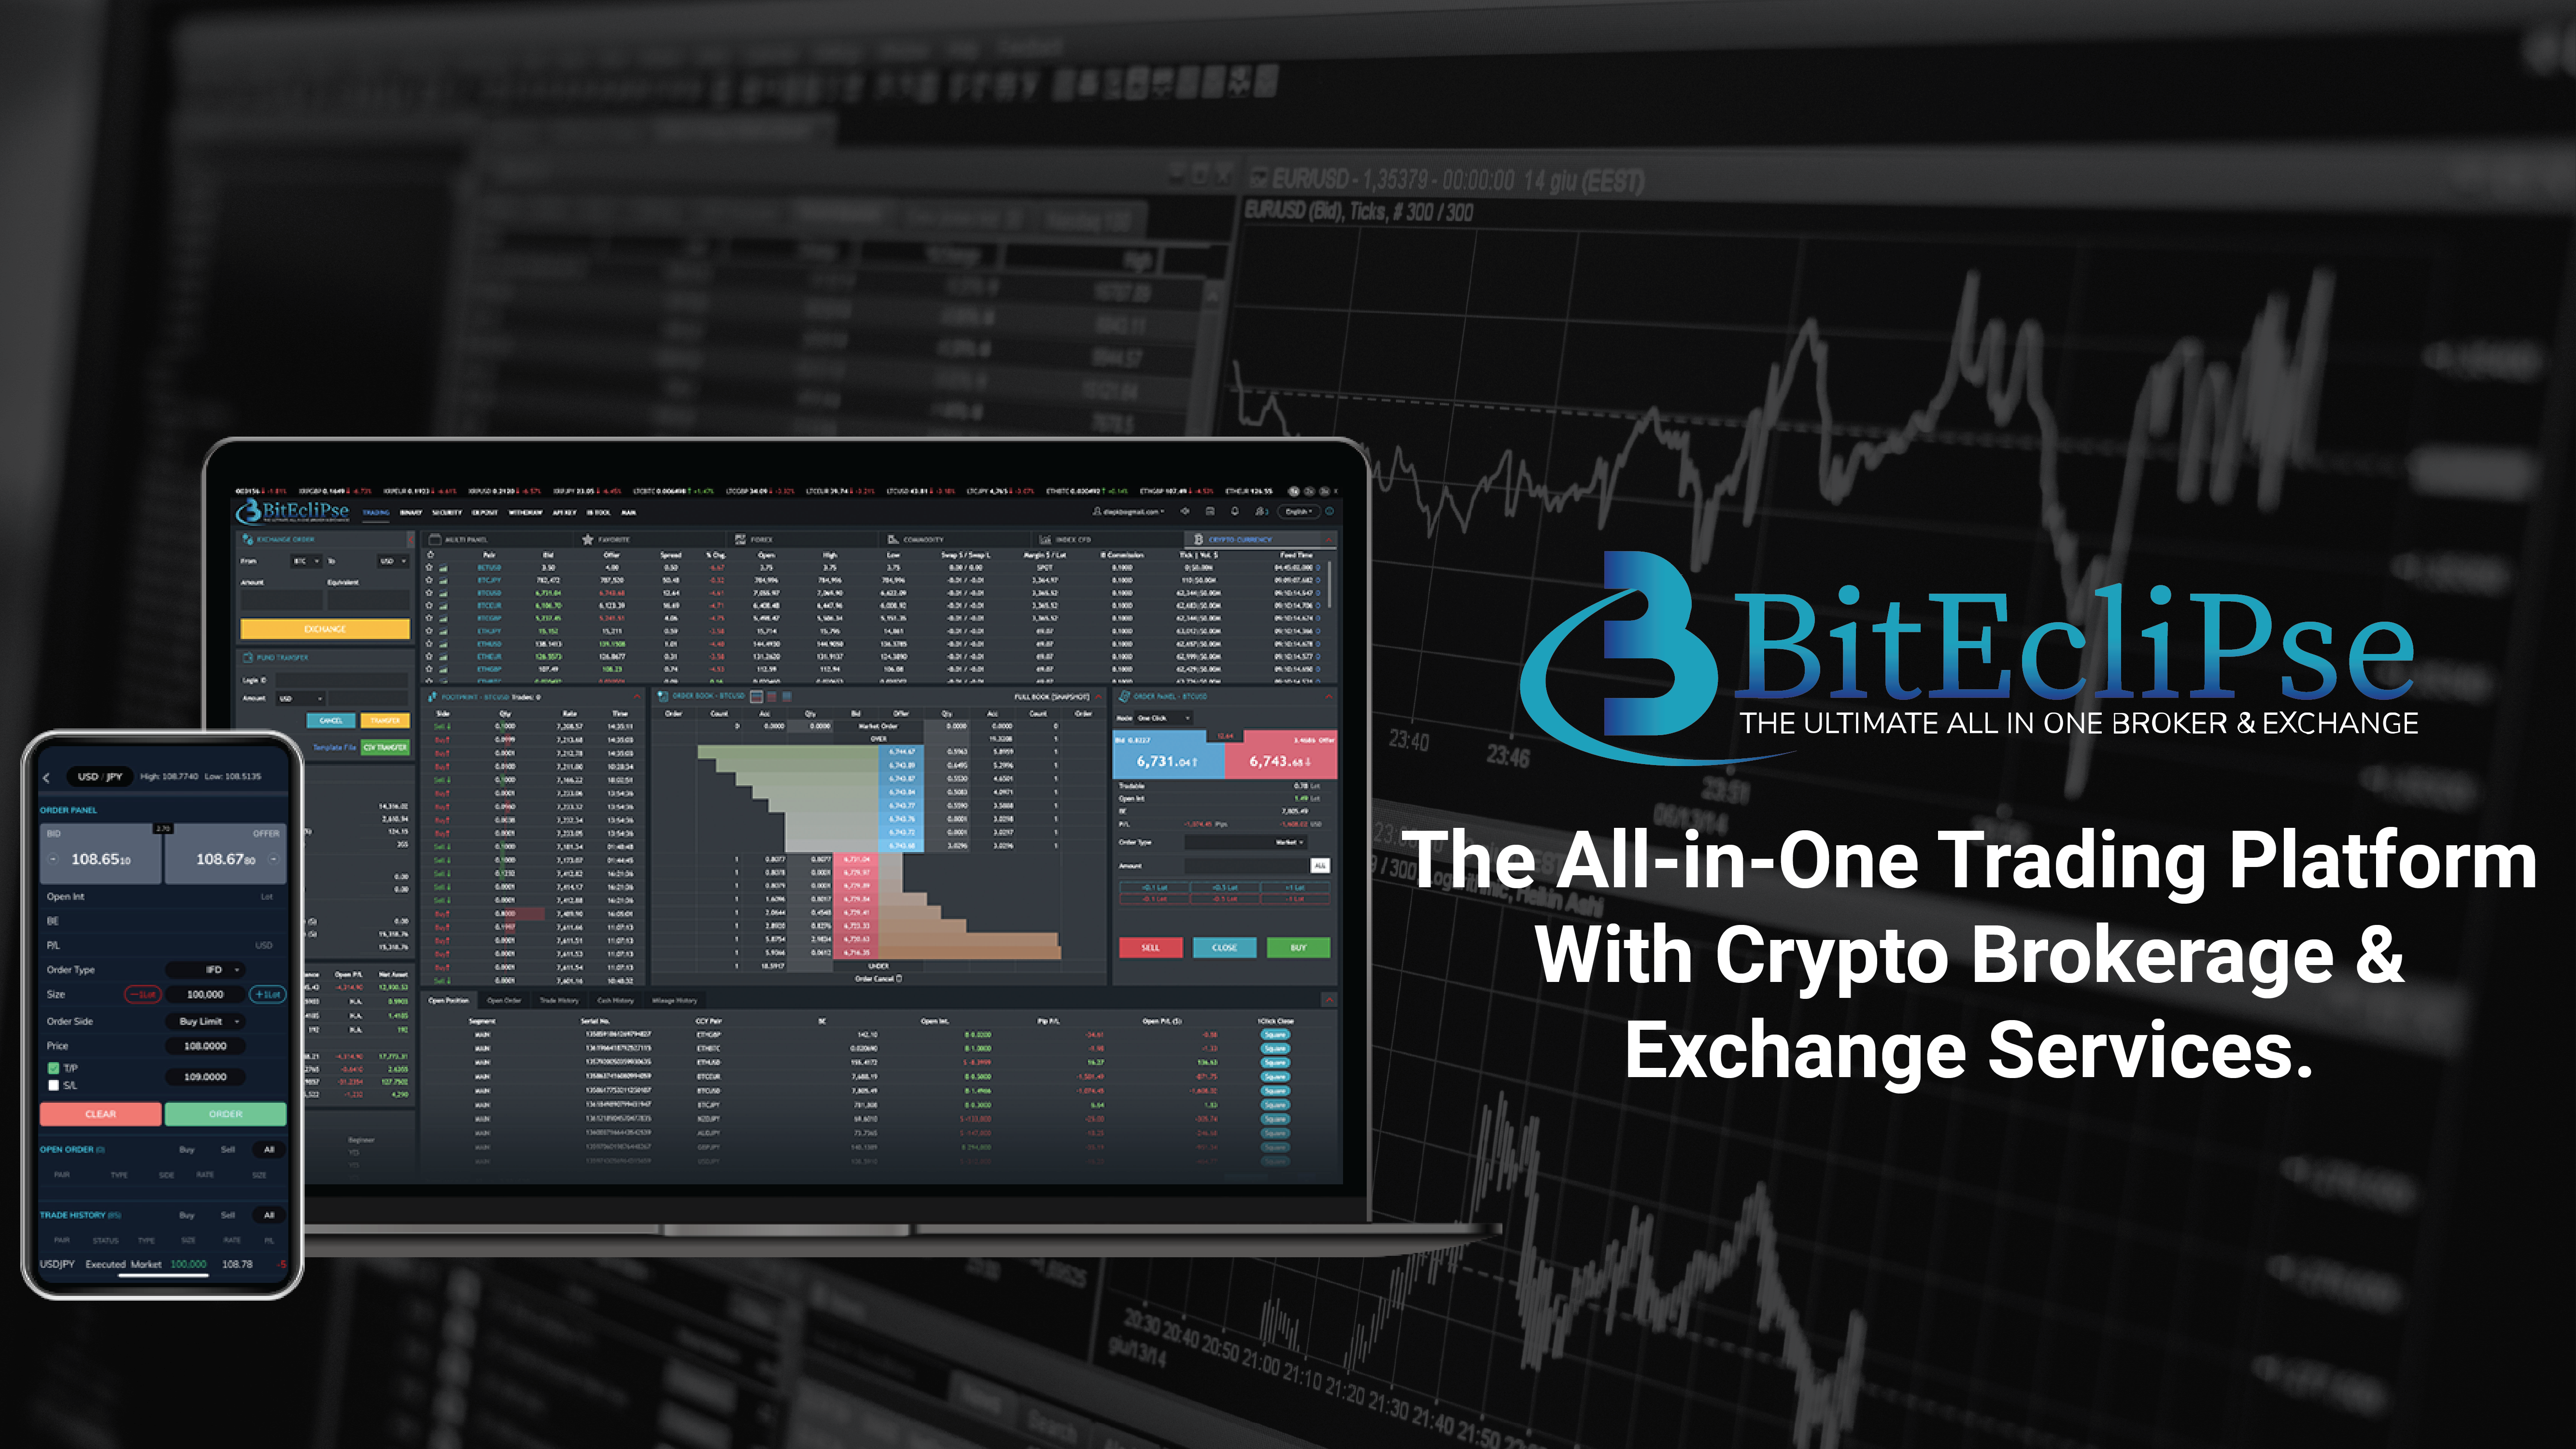 BitEclipse: The All-in-One Trading Platform With Crypto Brokerage and Exchange Services